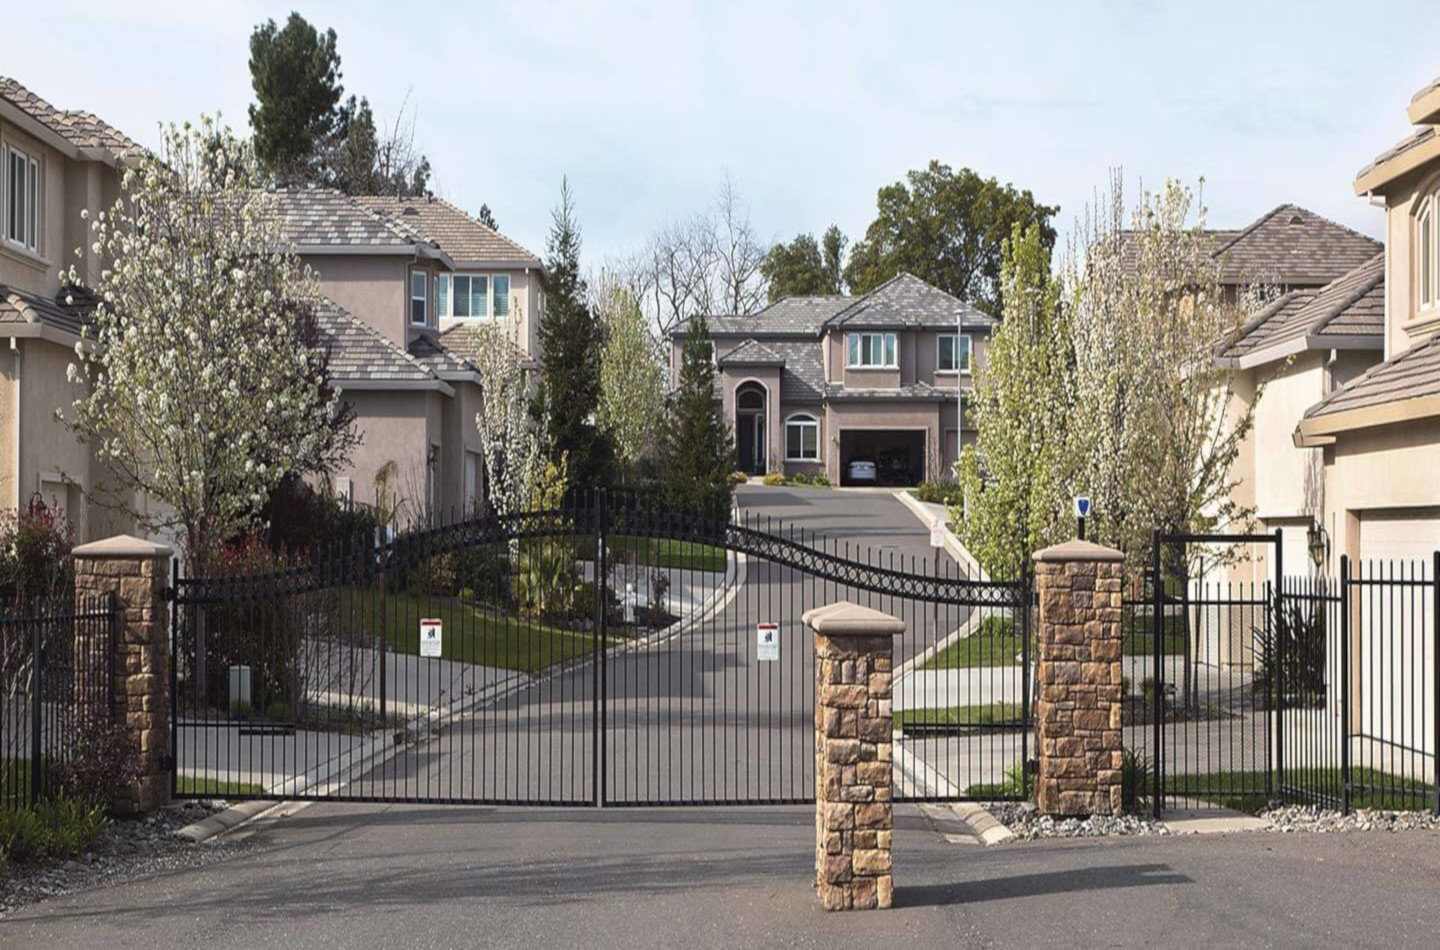 05_Gated Community-Entrance_with_Stone_Columns GIMP(1x.66).jpg